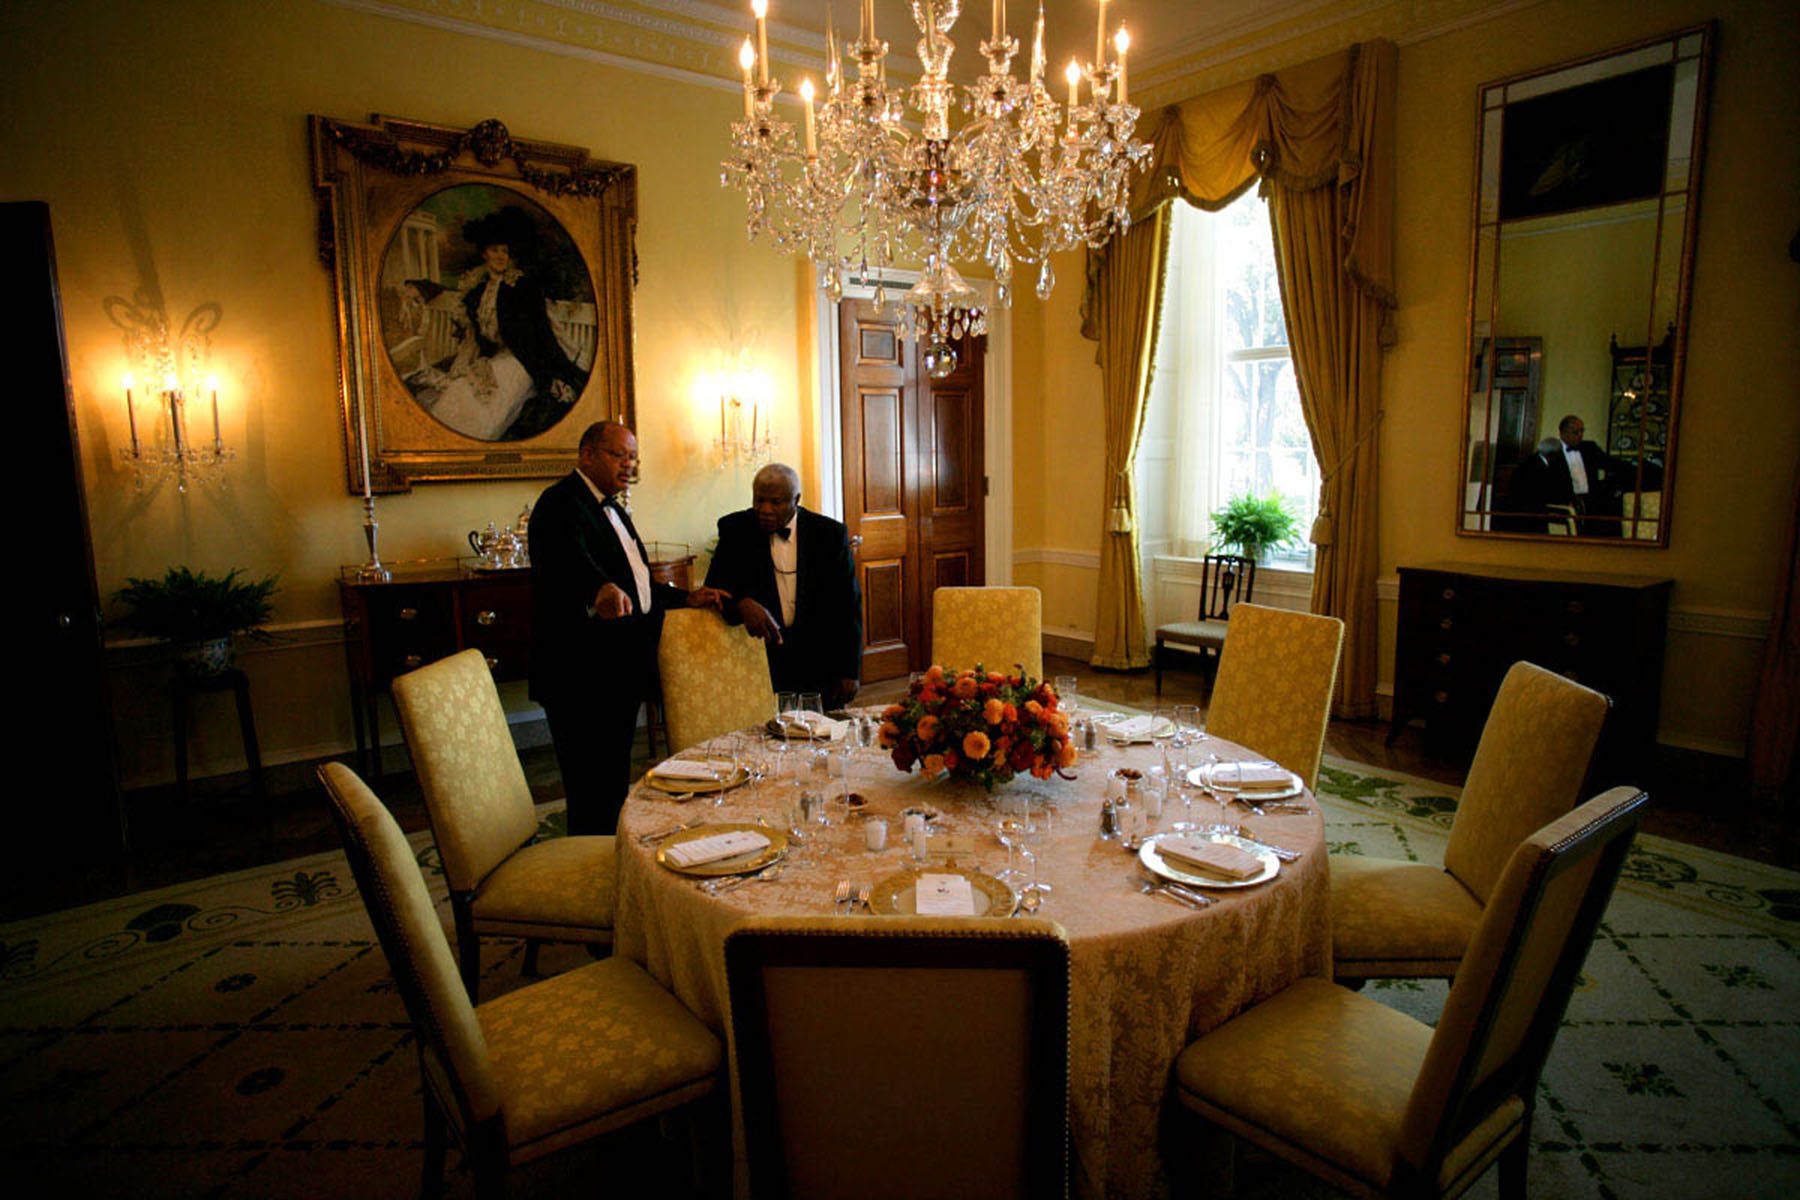 Members of the White House Maitre'De staff go over final arrangements for a dinner in the Old Family Dining Room at the White House.  President George W Bush is hosting a working dinner with Pakistani President Pervez Musharraf and Afghan President Hamid Karzai after a trilateral meeting in the Oval Office.    Also attending the dinner are Vice President Dick Cheney, Secretary of State Condoleezza Rice, National Security Advisor Stephen Hadley and the  ambassadors to Pakistan and Afganistan.Photo by Brooks Kraft/Corbis